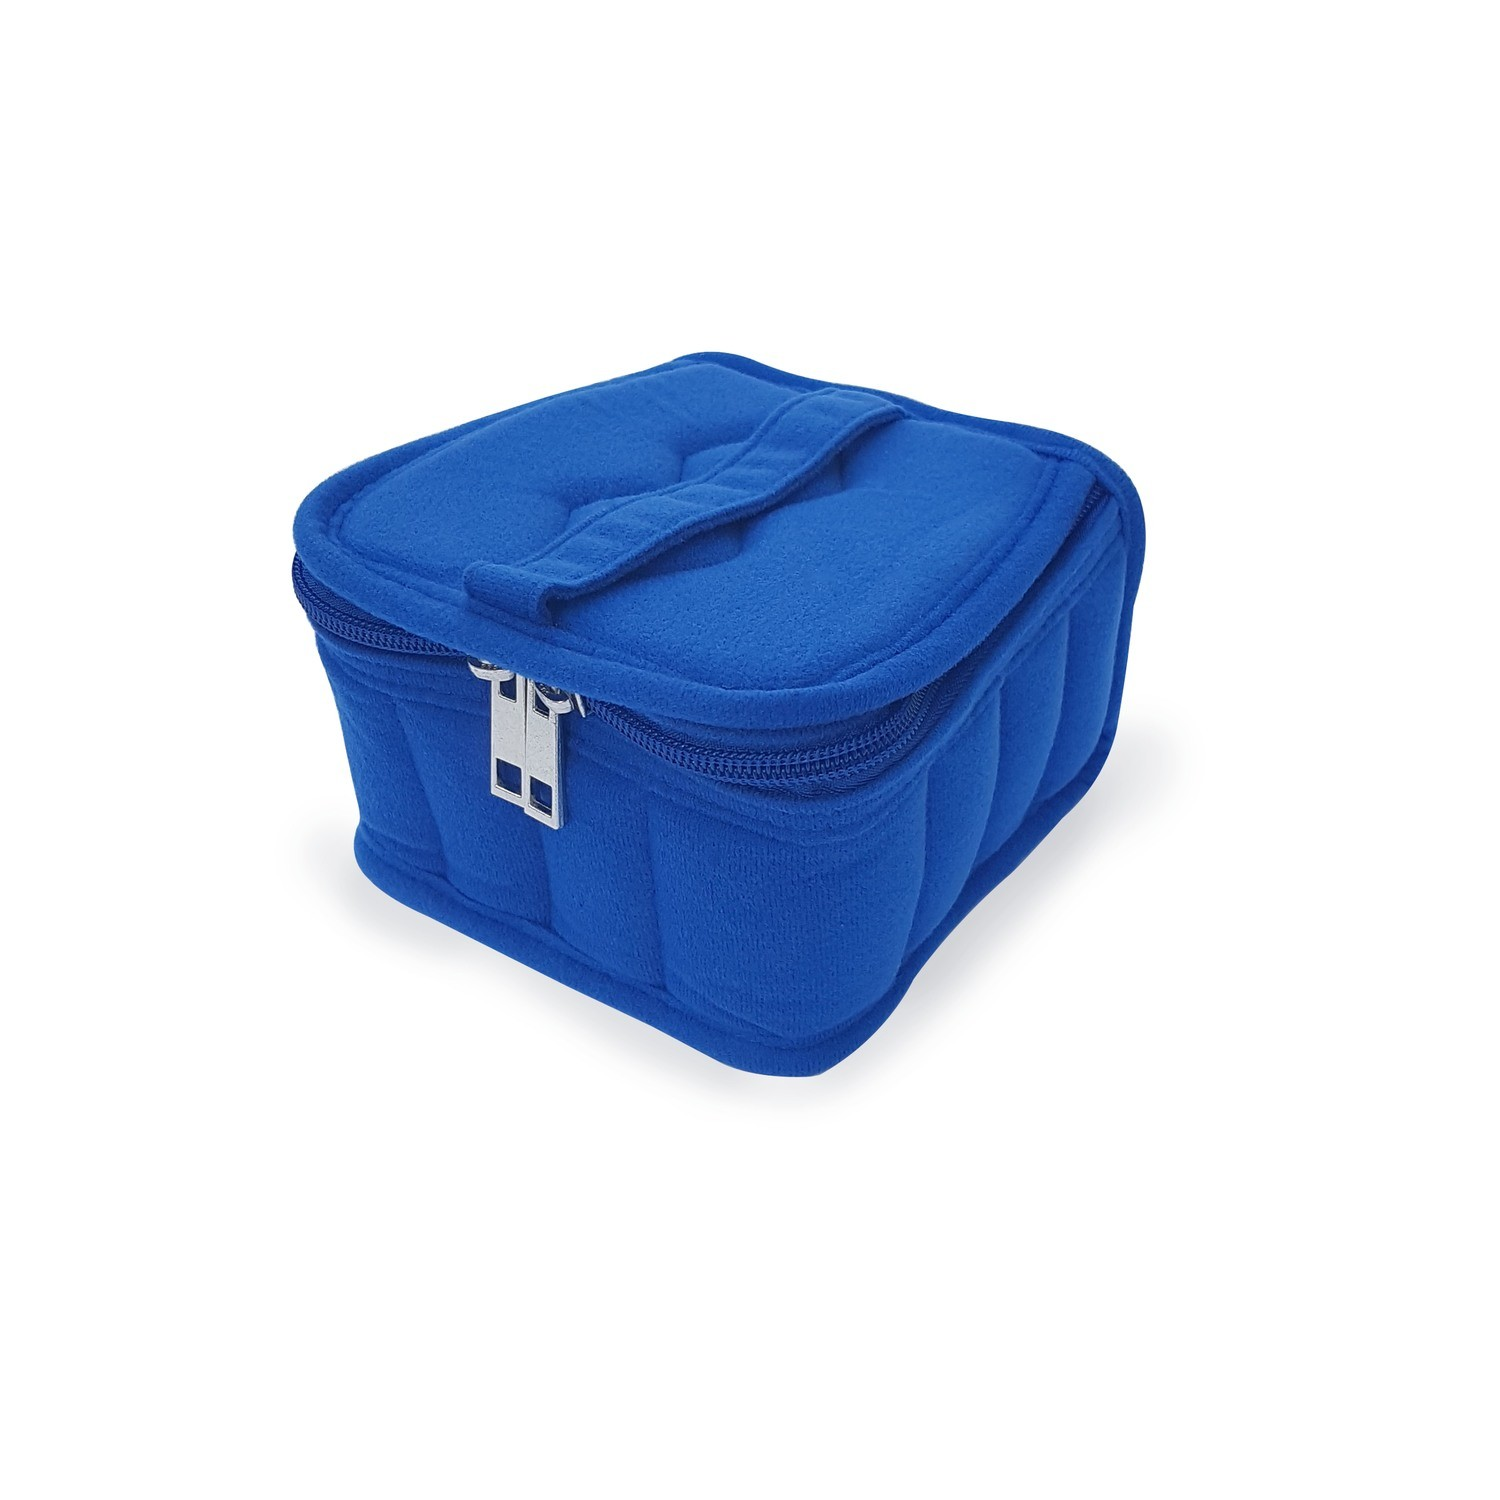 Soft Carry Case - Suitable for Aromatherapy Kit